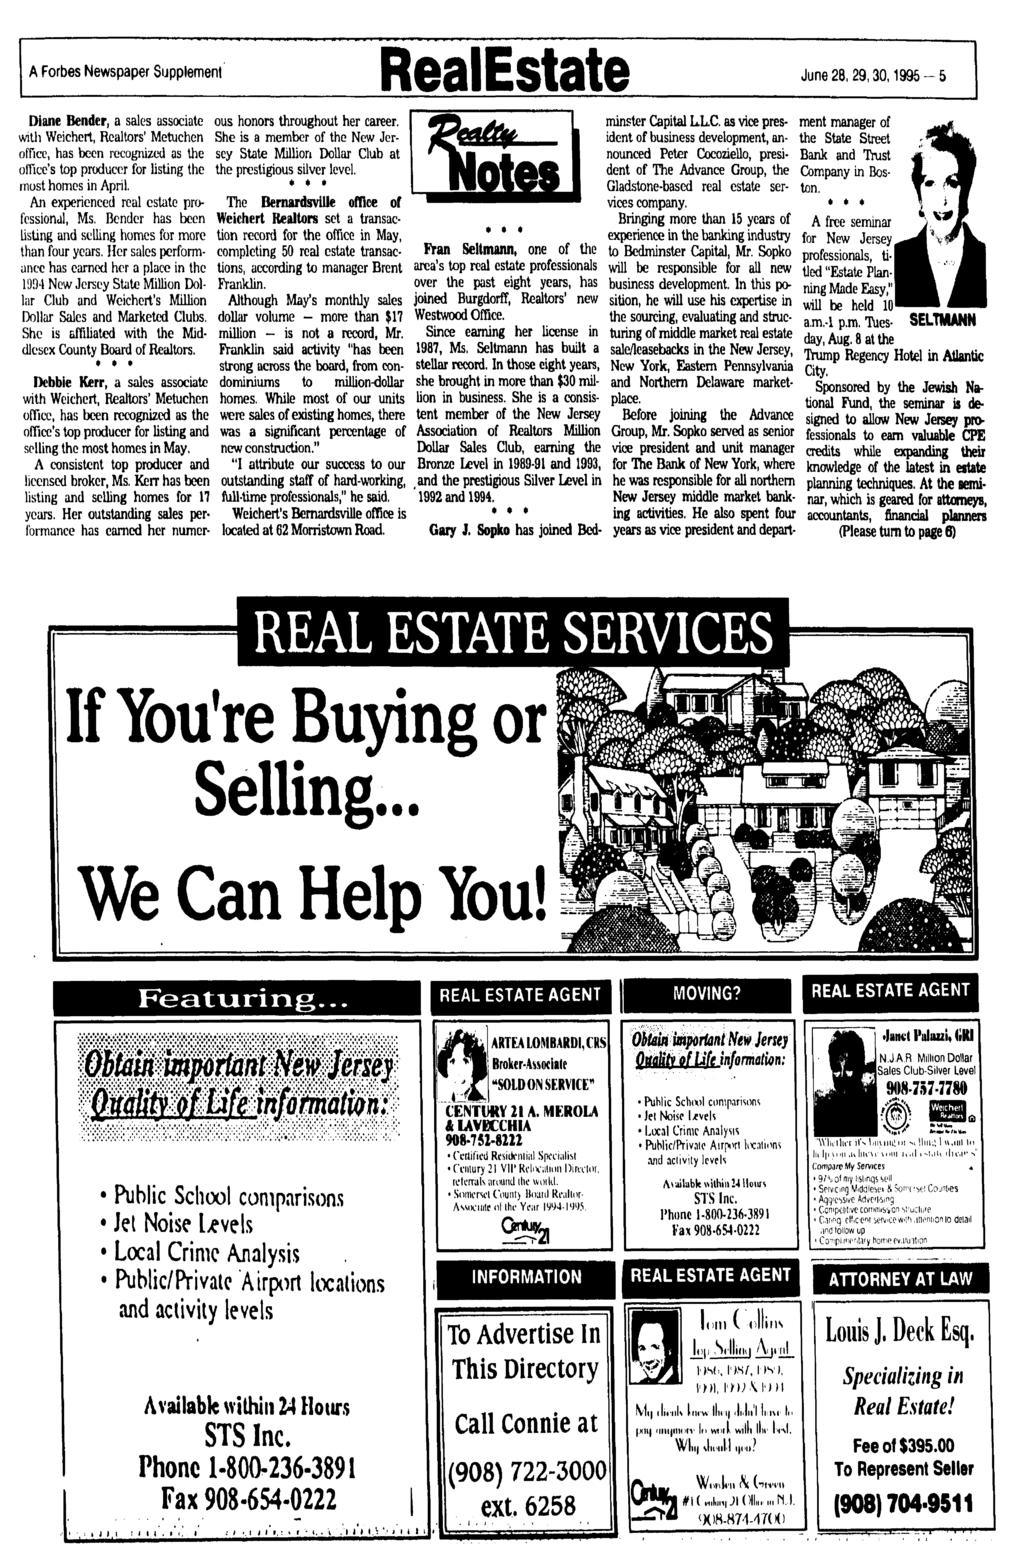 A Forbes Newspaper Supplement RealEstate June 28,29,30,1995-5 Diane Bender, a sales associate with Weichert, Realtors' Metuchen office, has been recognized as the office's top producer for listing